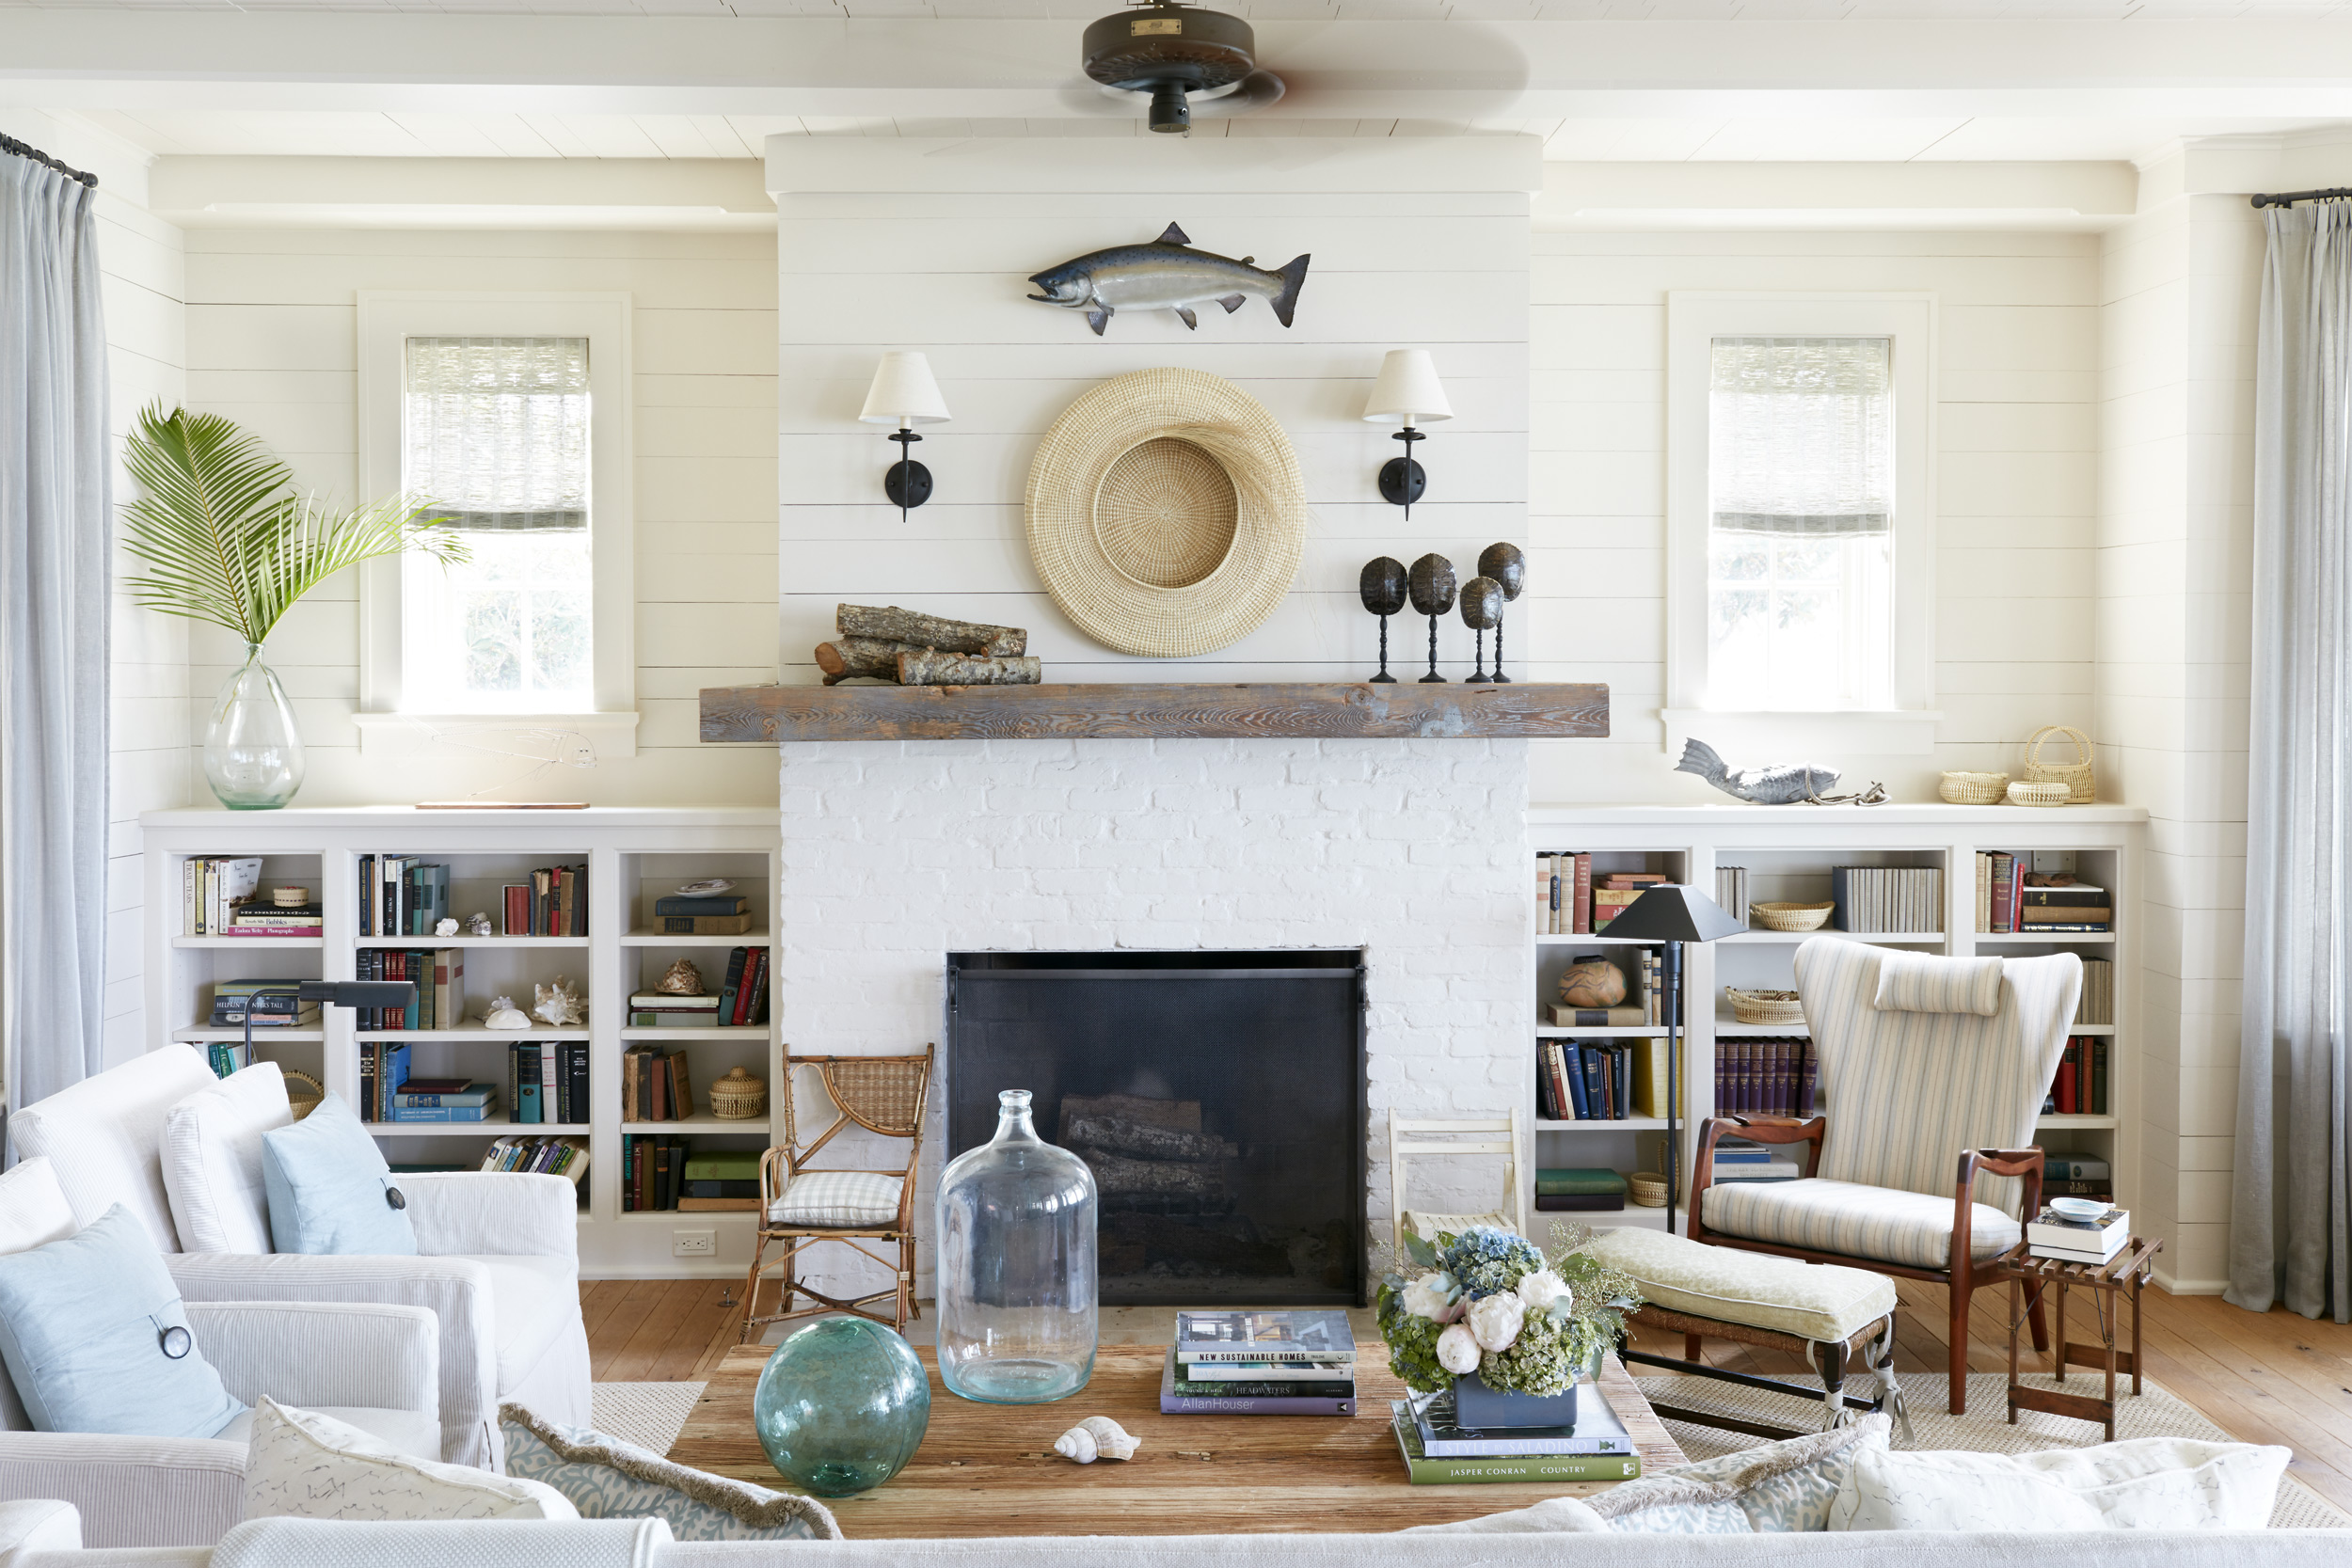 Tammy Connor living room shot for House Beautiful, Mali Azima photography